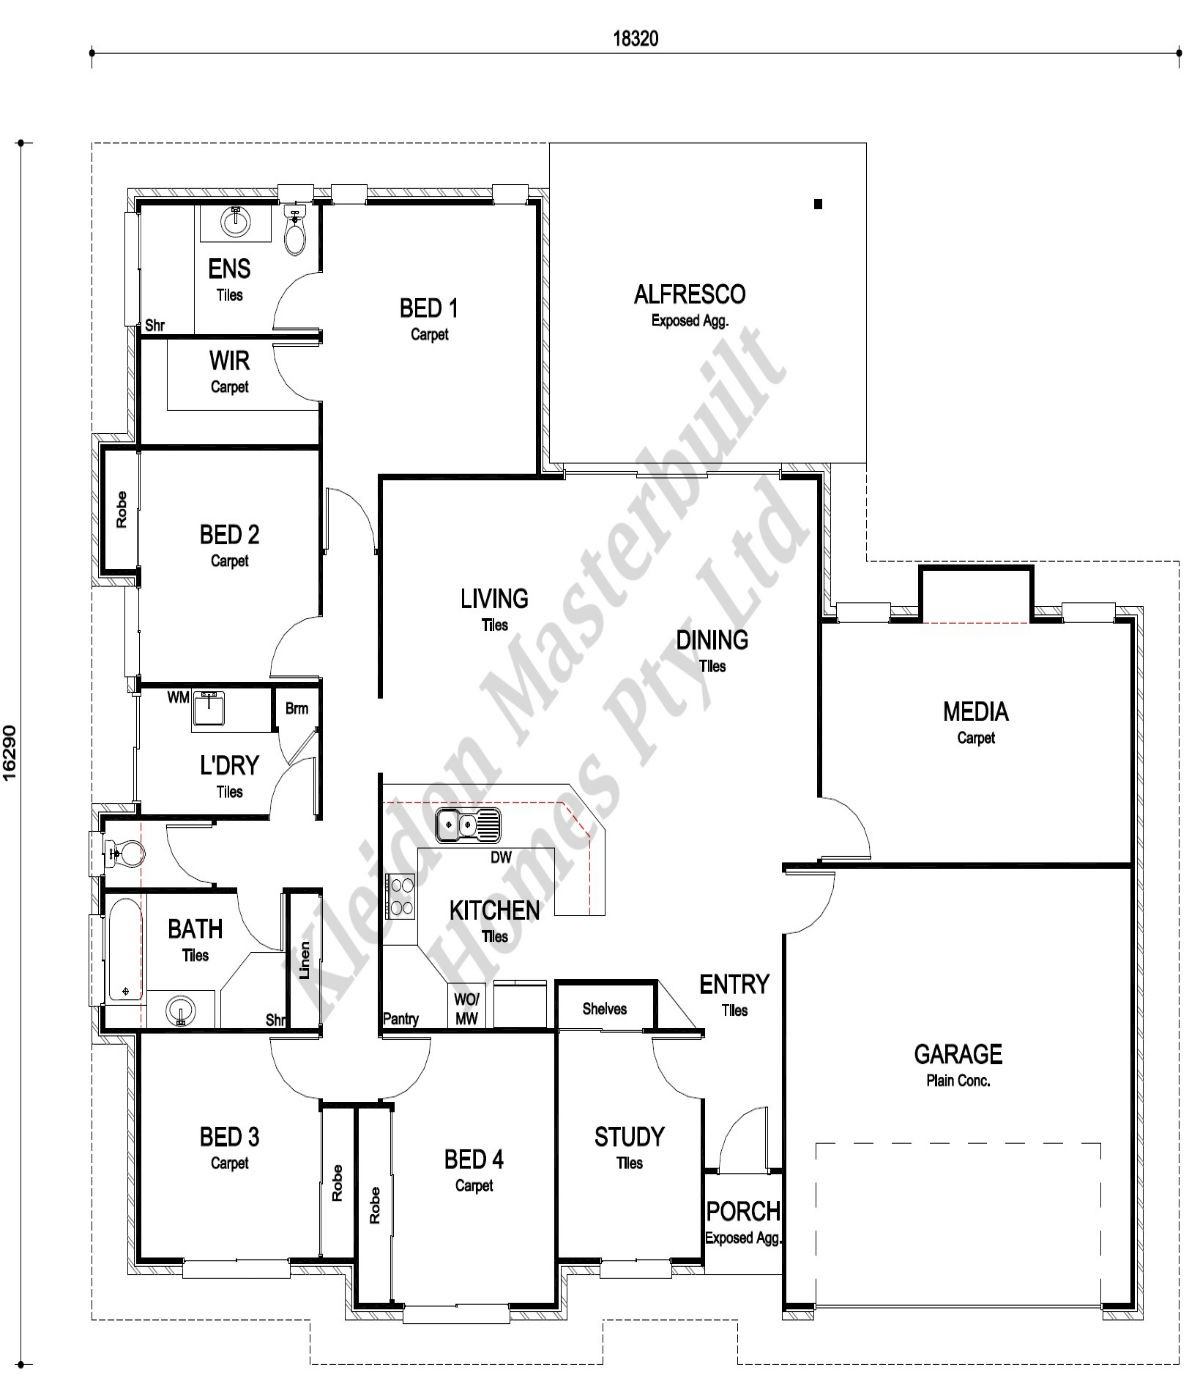 Lot 34 Black Beauty Court, Kensington Floorplan